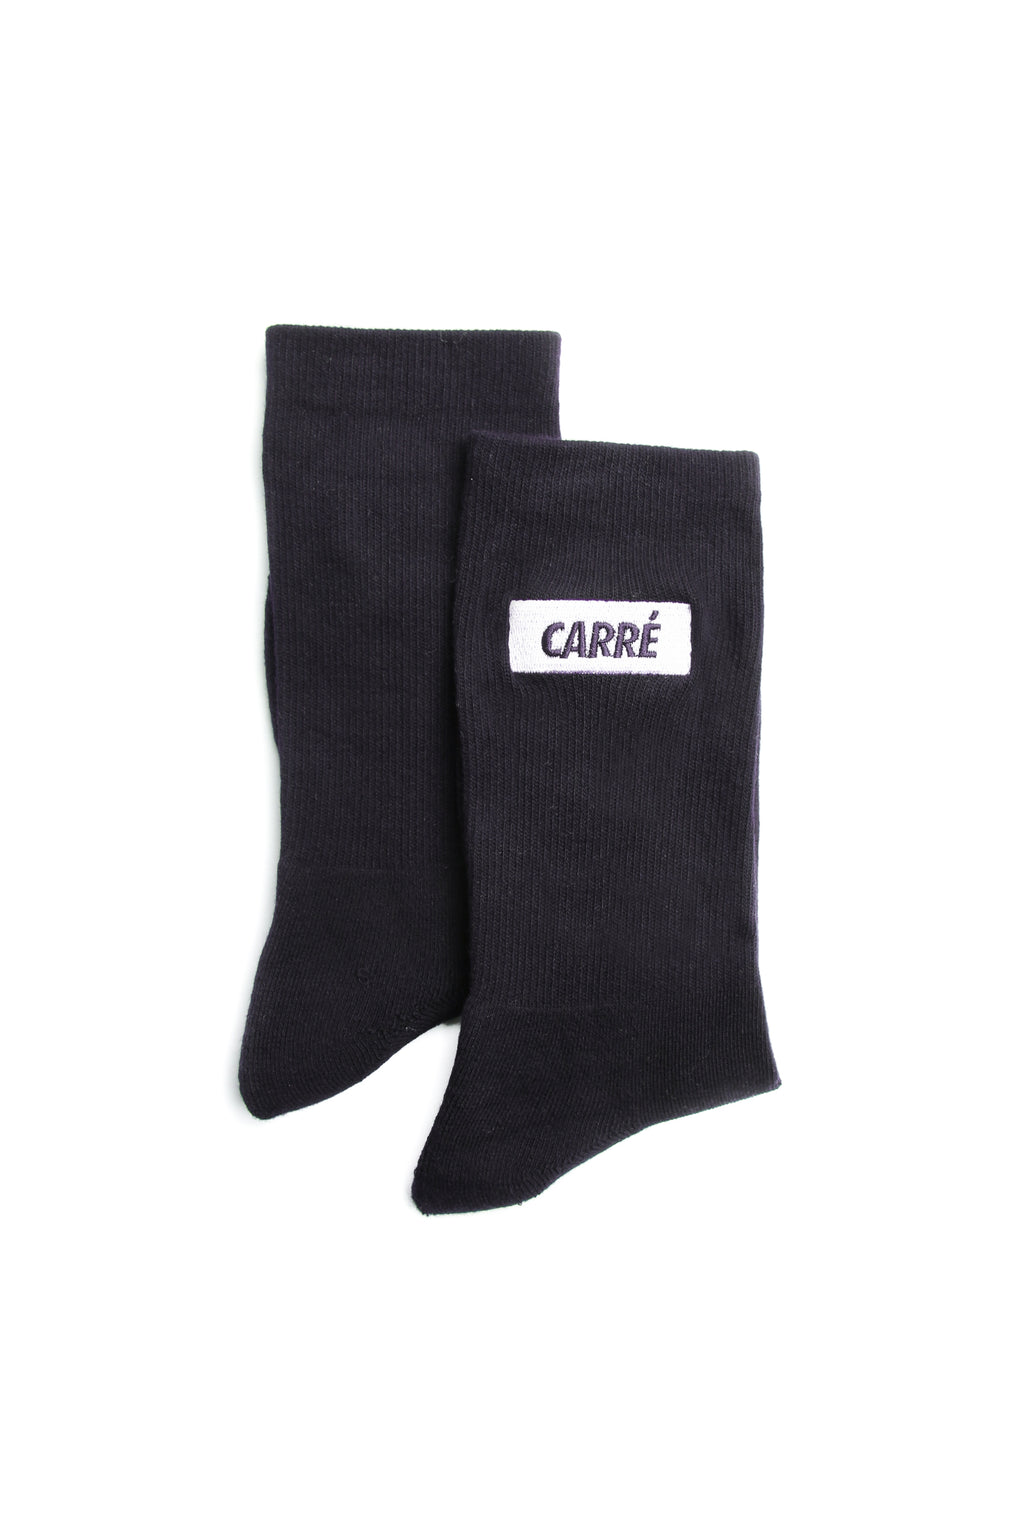 Carré Incline Socks Navy